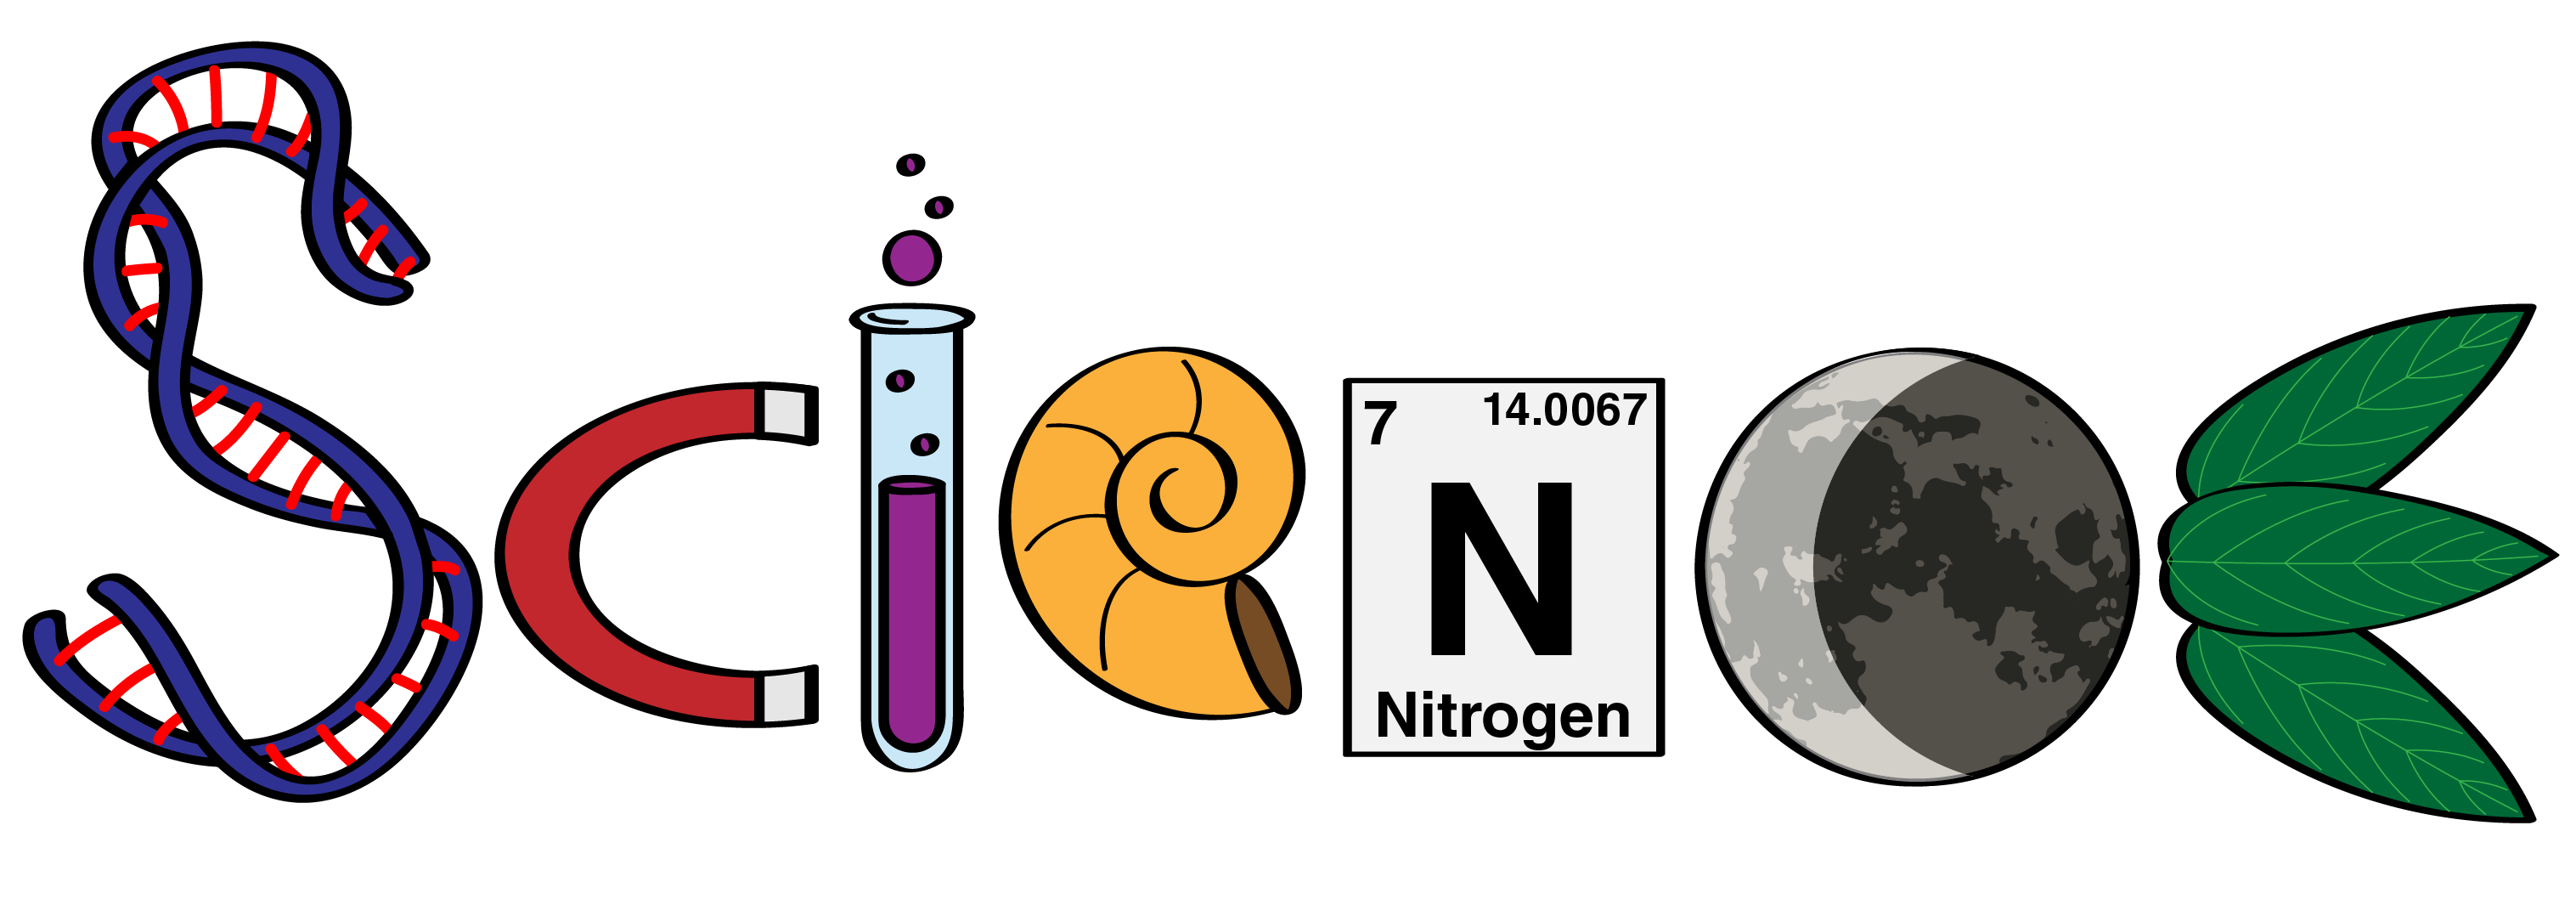 PNG For Science - 66332